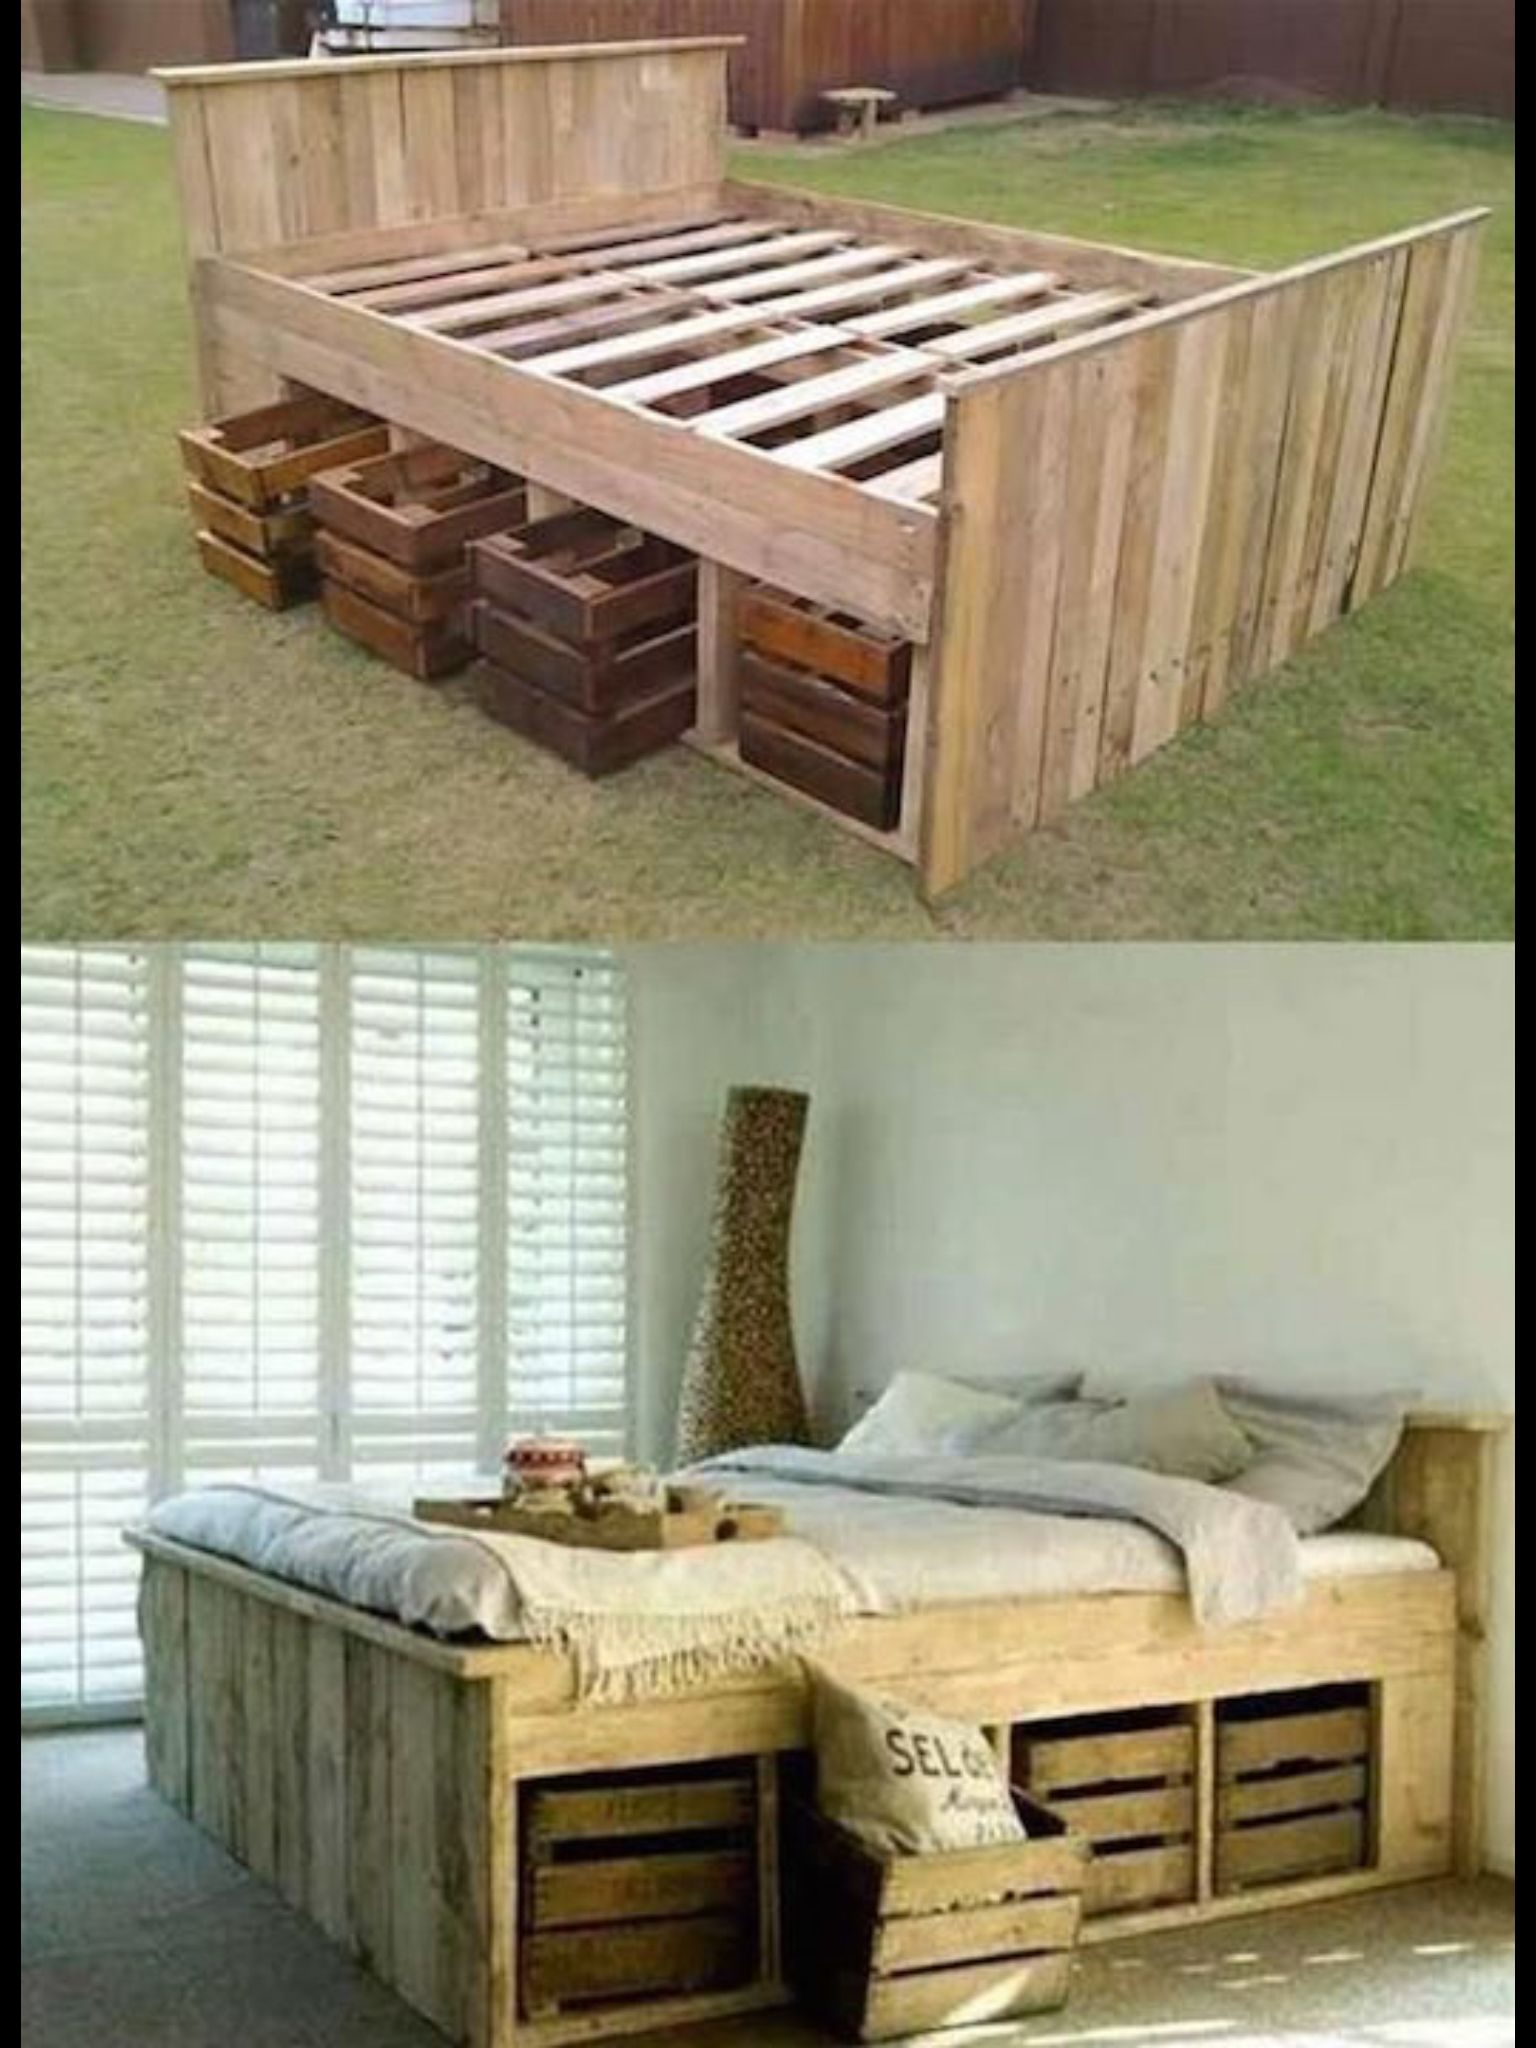 Crate bed with storage | cama | Pinterest | Camas, Dormitorio y ...